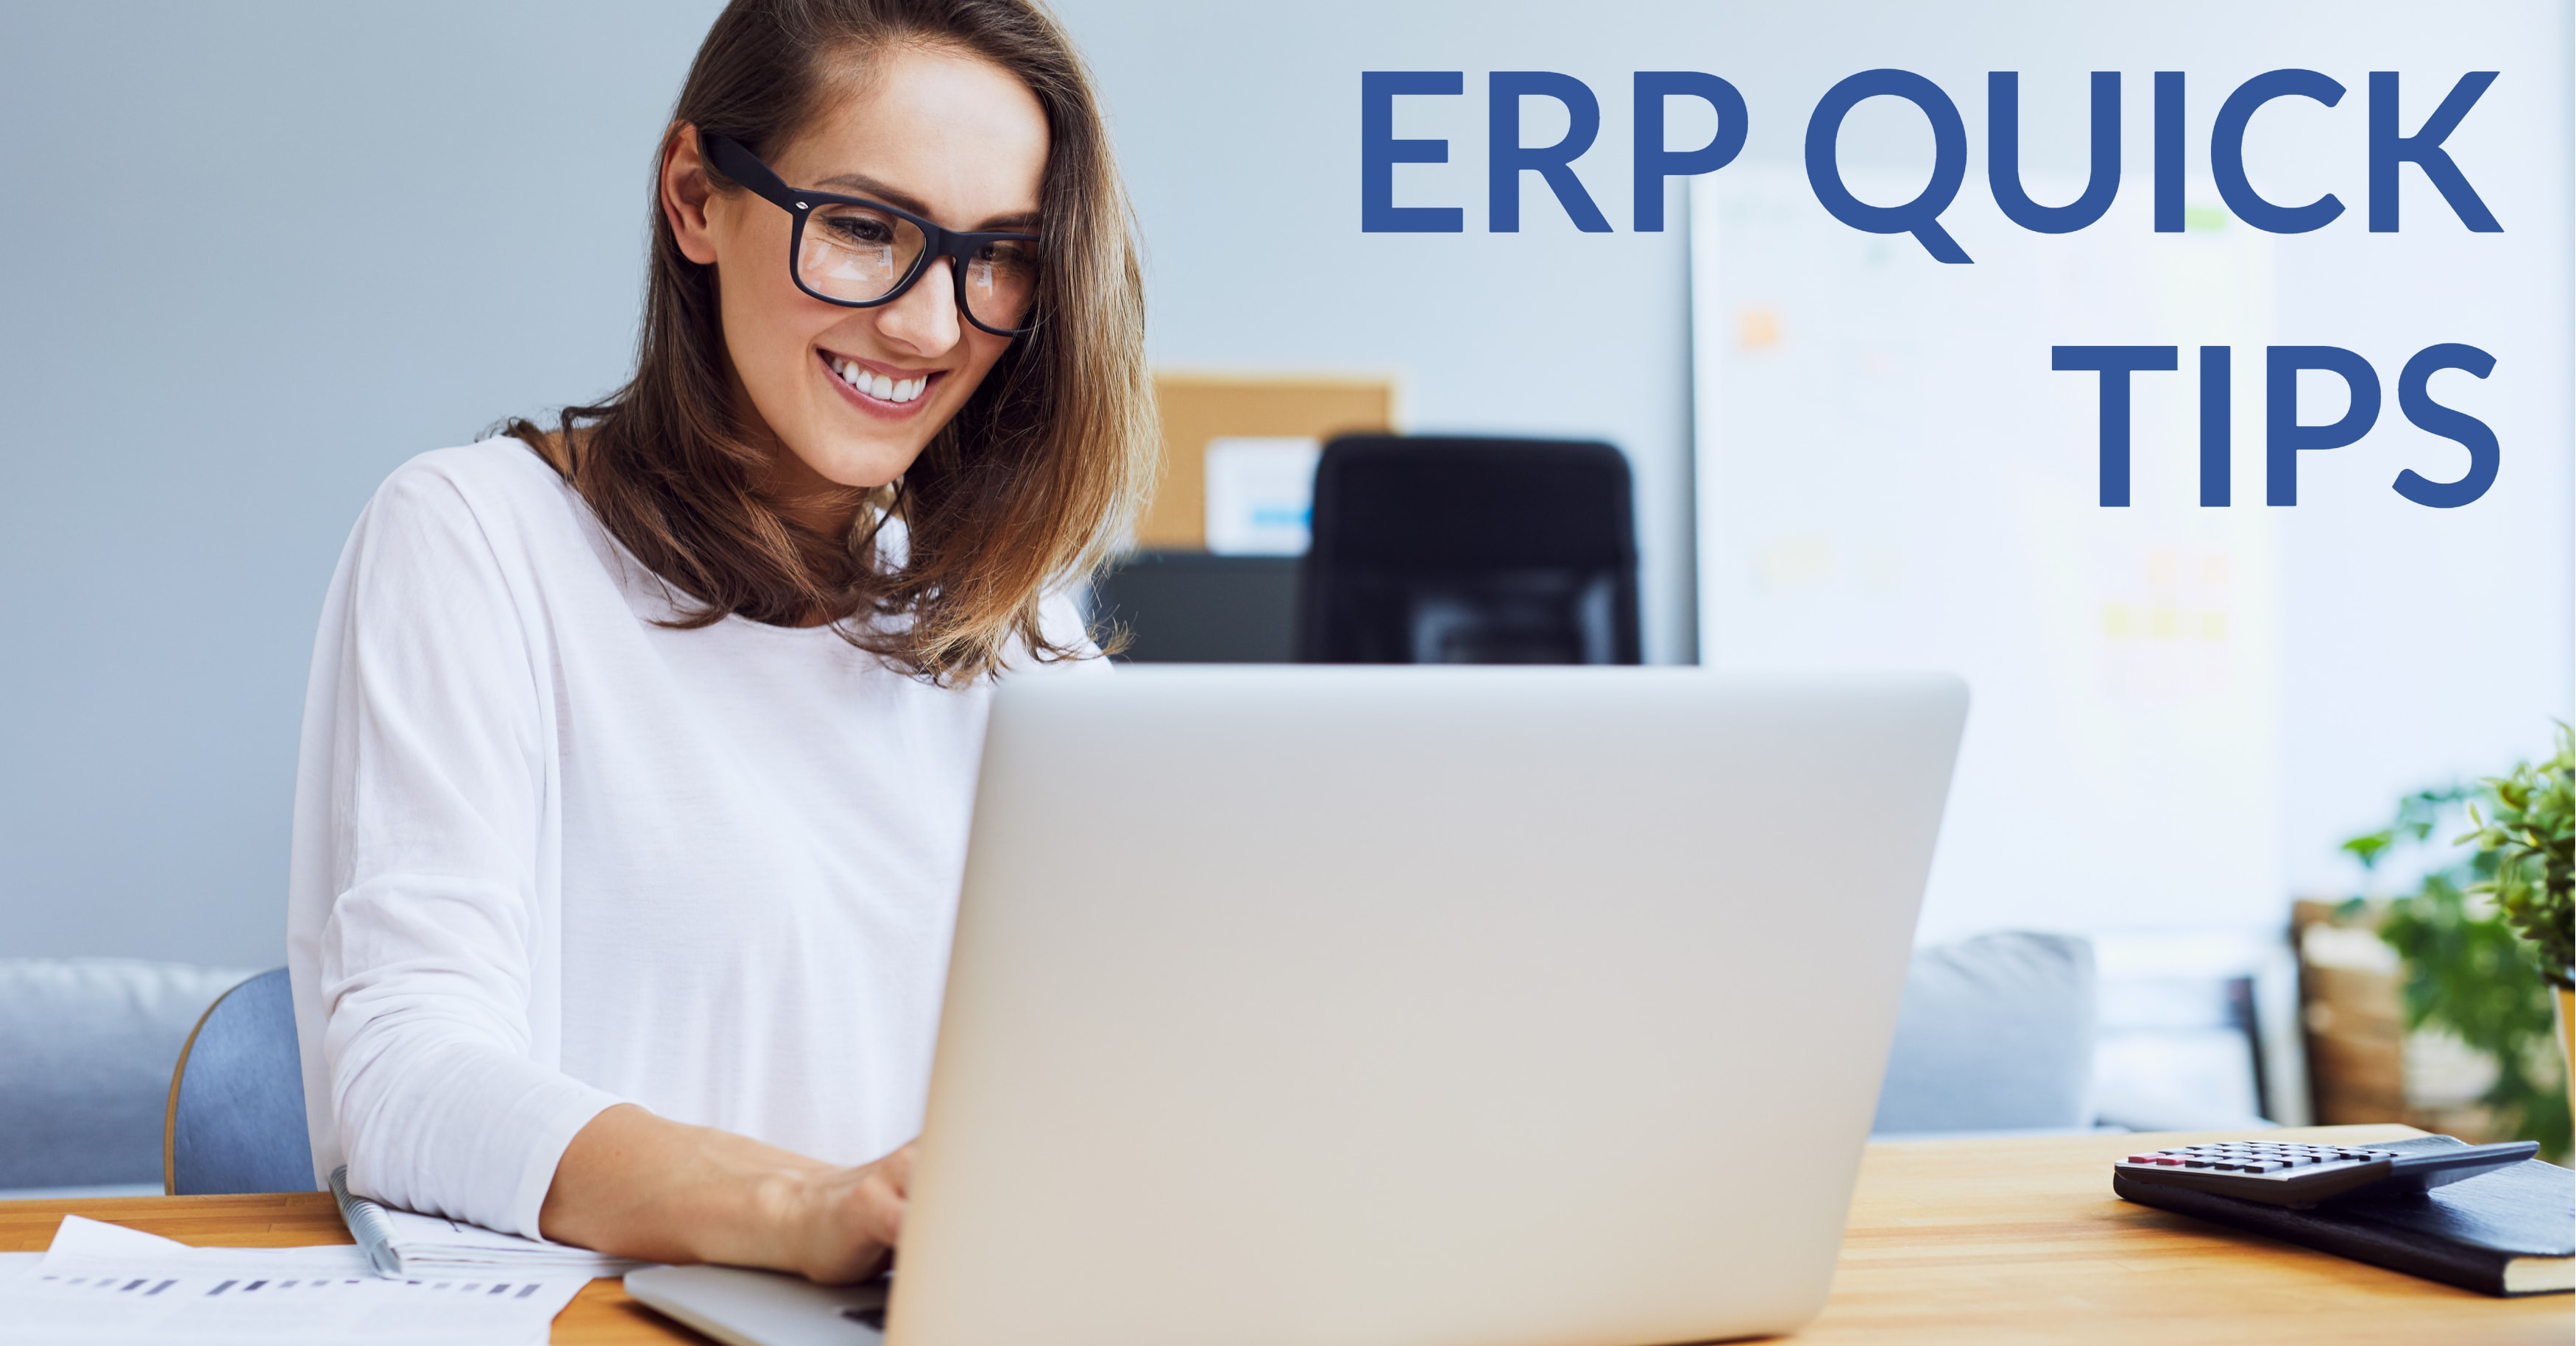 ERP Quick Tips